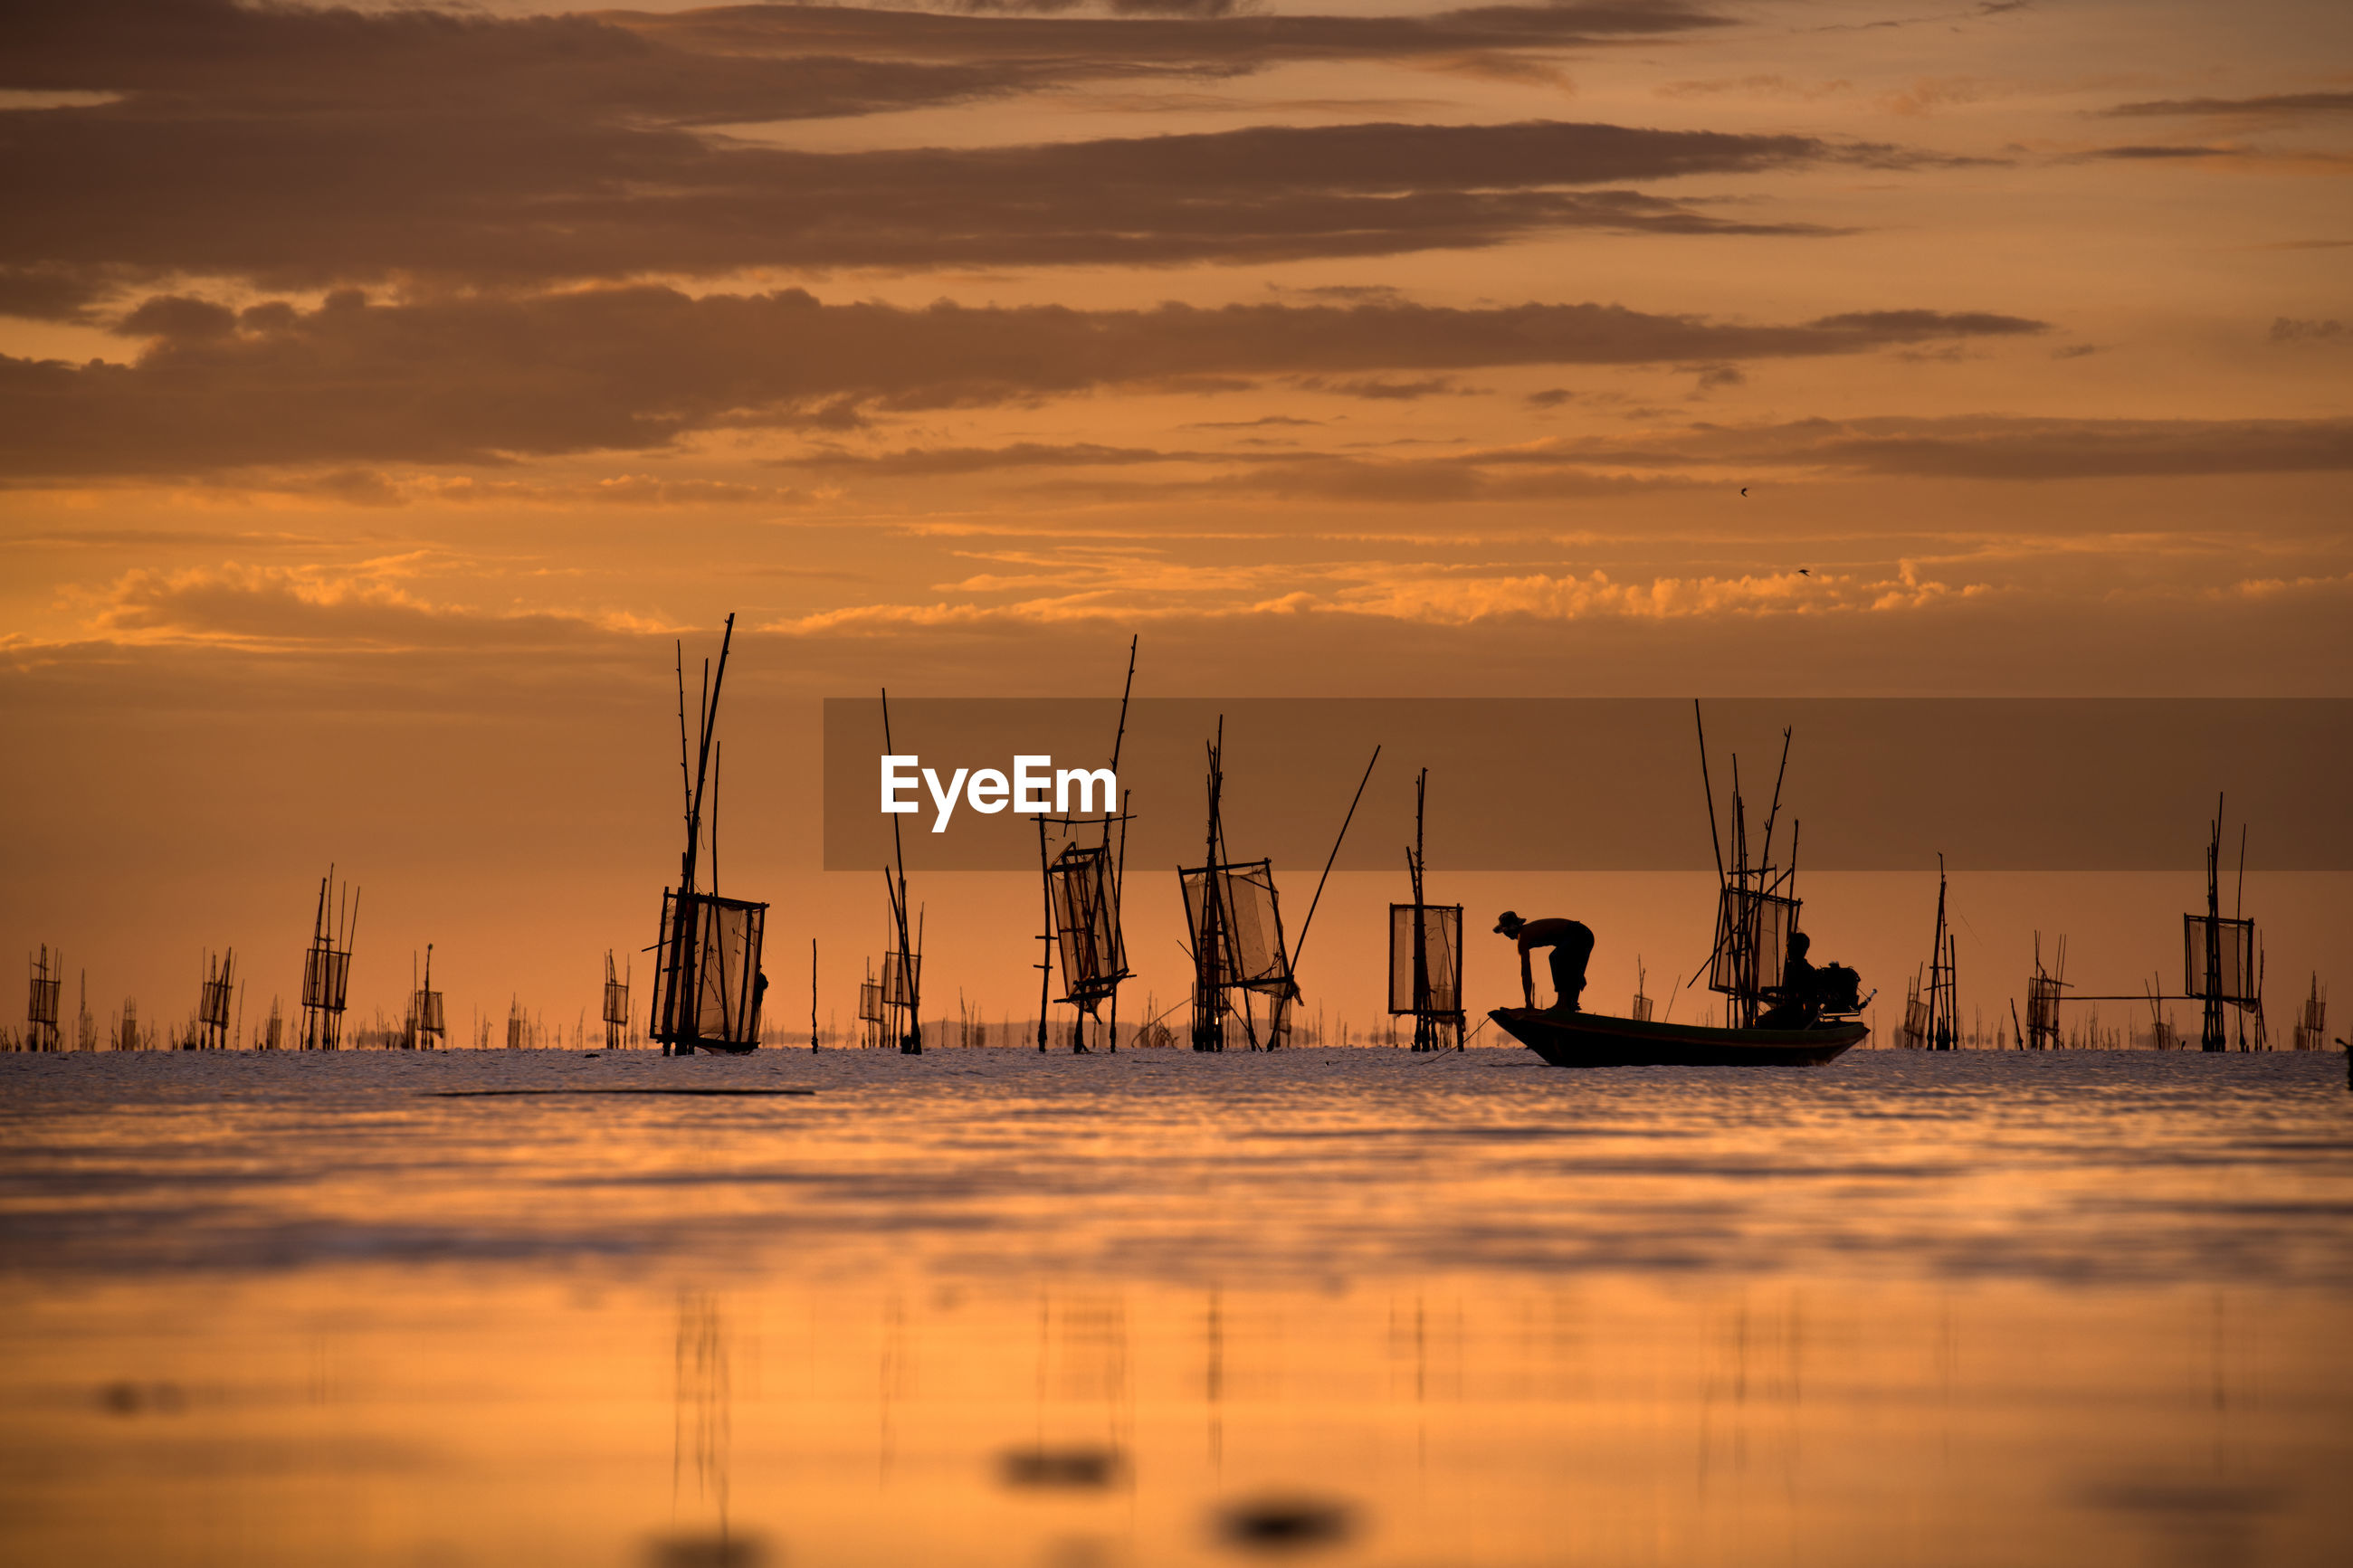 Silhouette men on sailboat in sea against sky during sunset